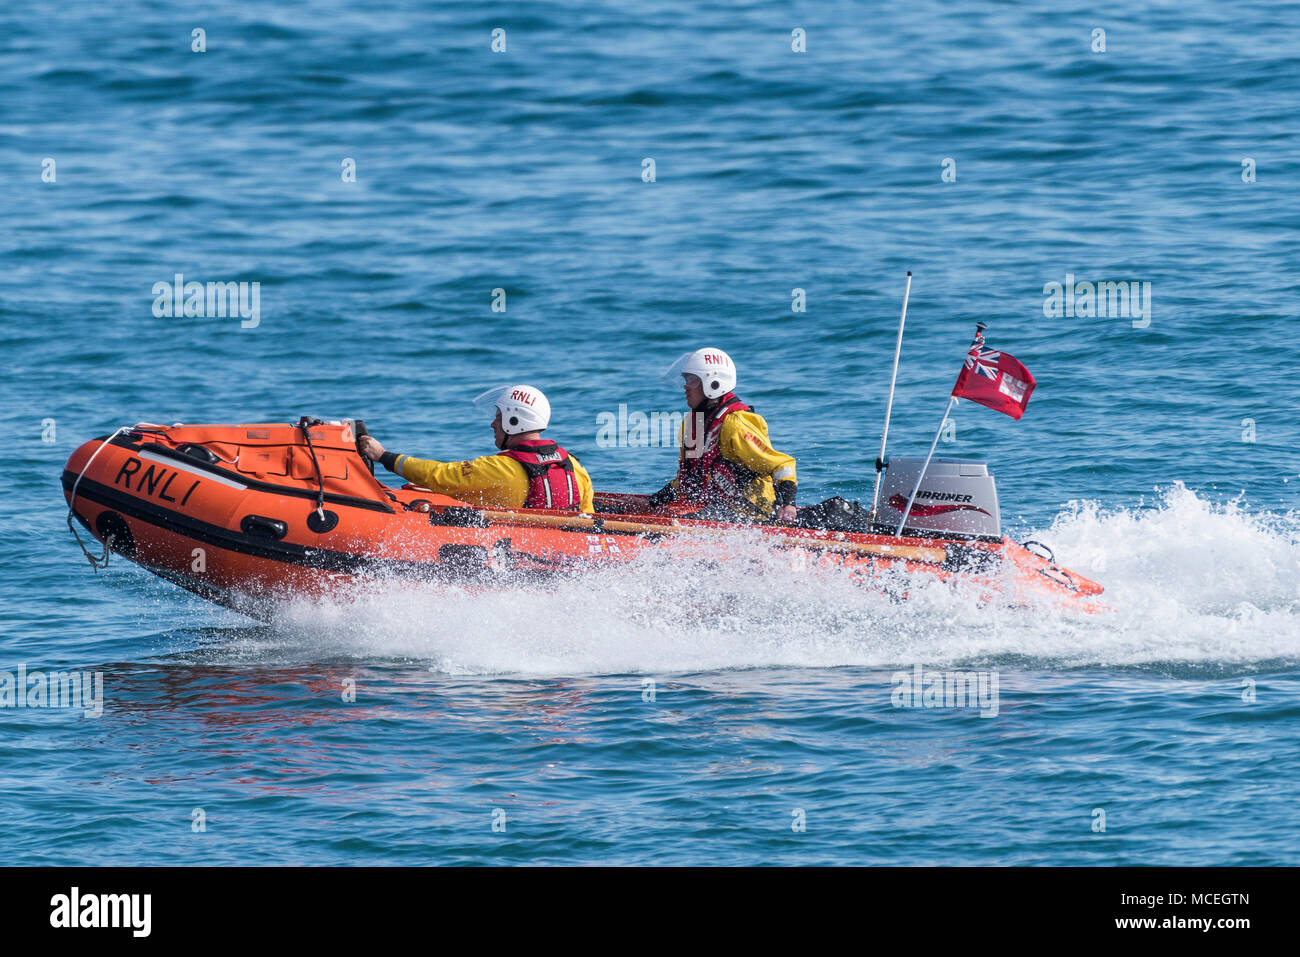 The Newquay Inshore rescue craft and its volunteer crew participating in a GMICE (Good Medicine in Challenging Environments) major incident exercise i - Stock Image